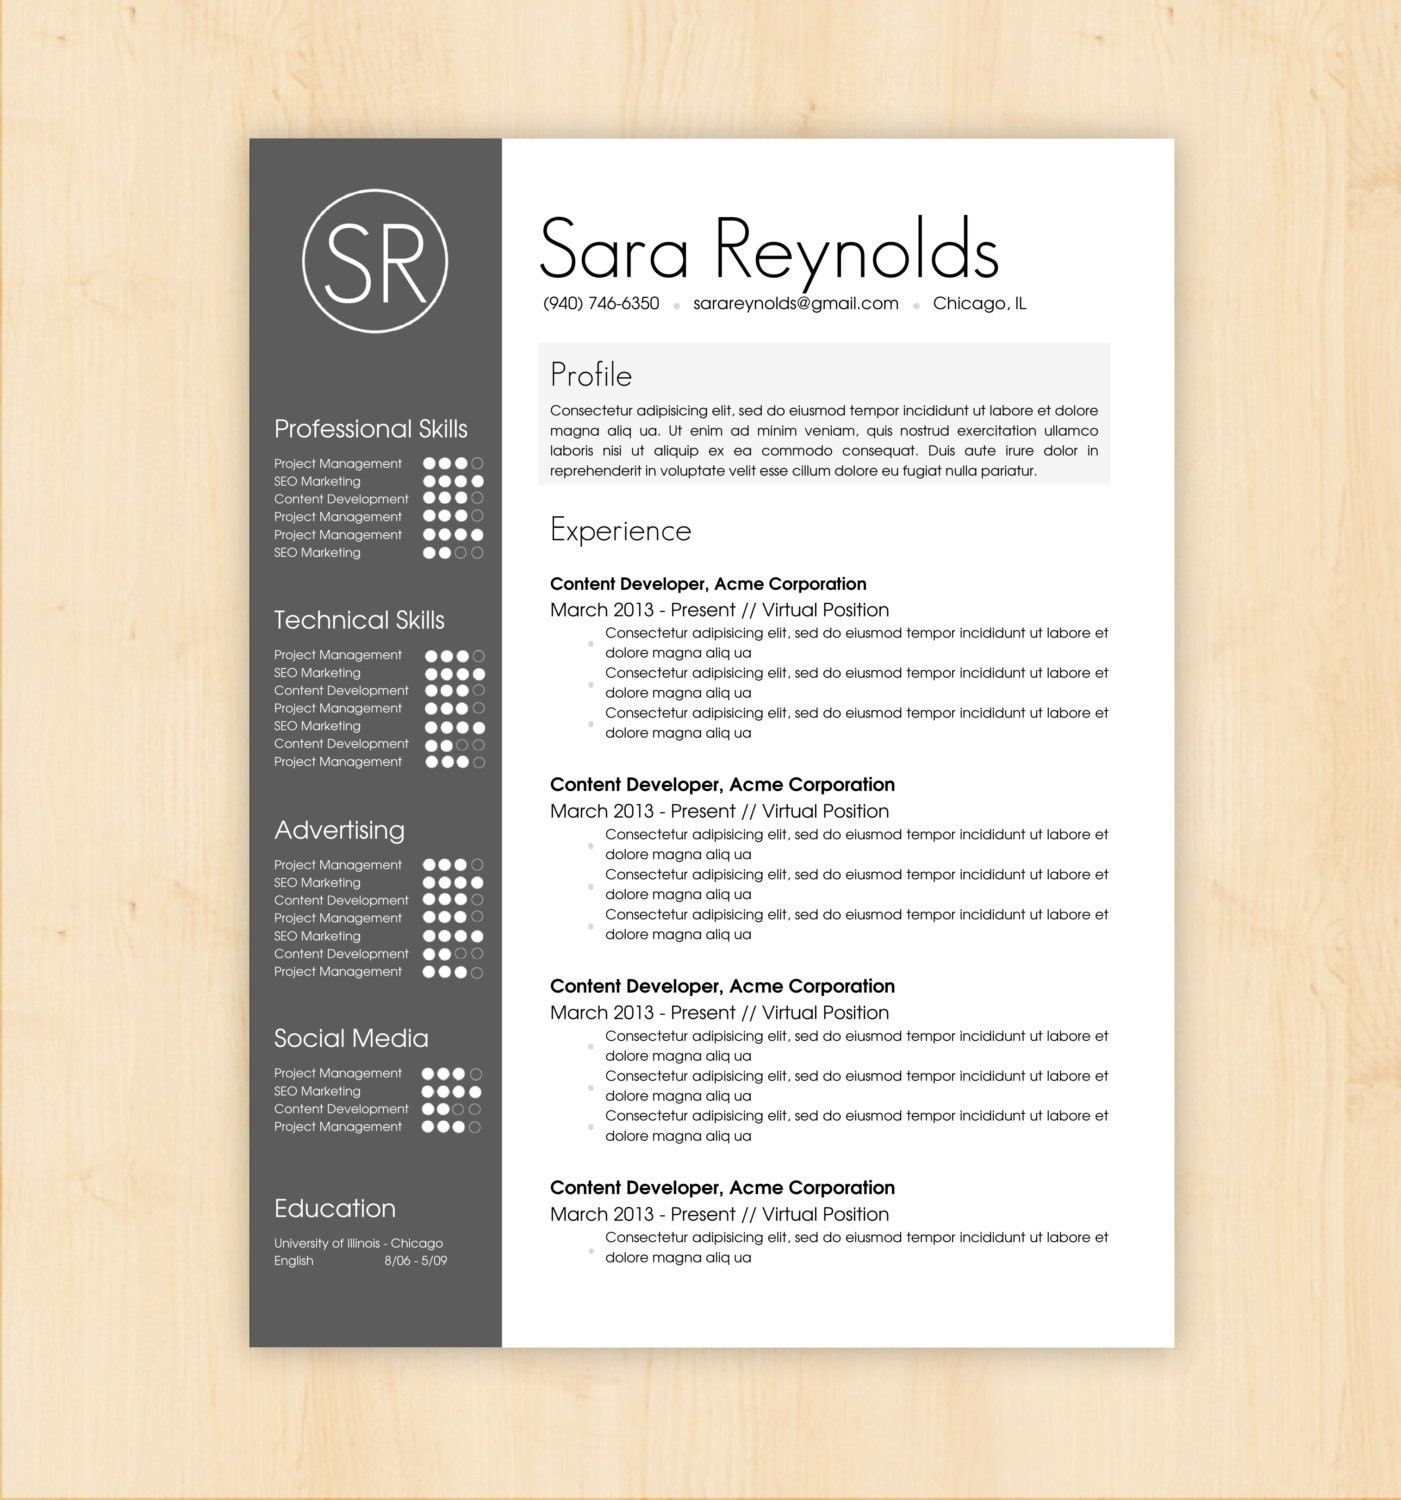 Professional Cv Resume Templates: Resume Template / CV Template The Sara Reynolds By PhDPress